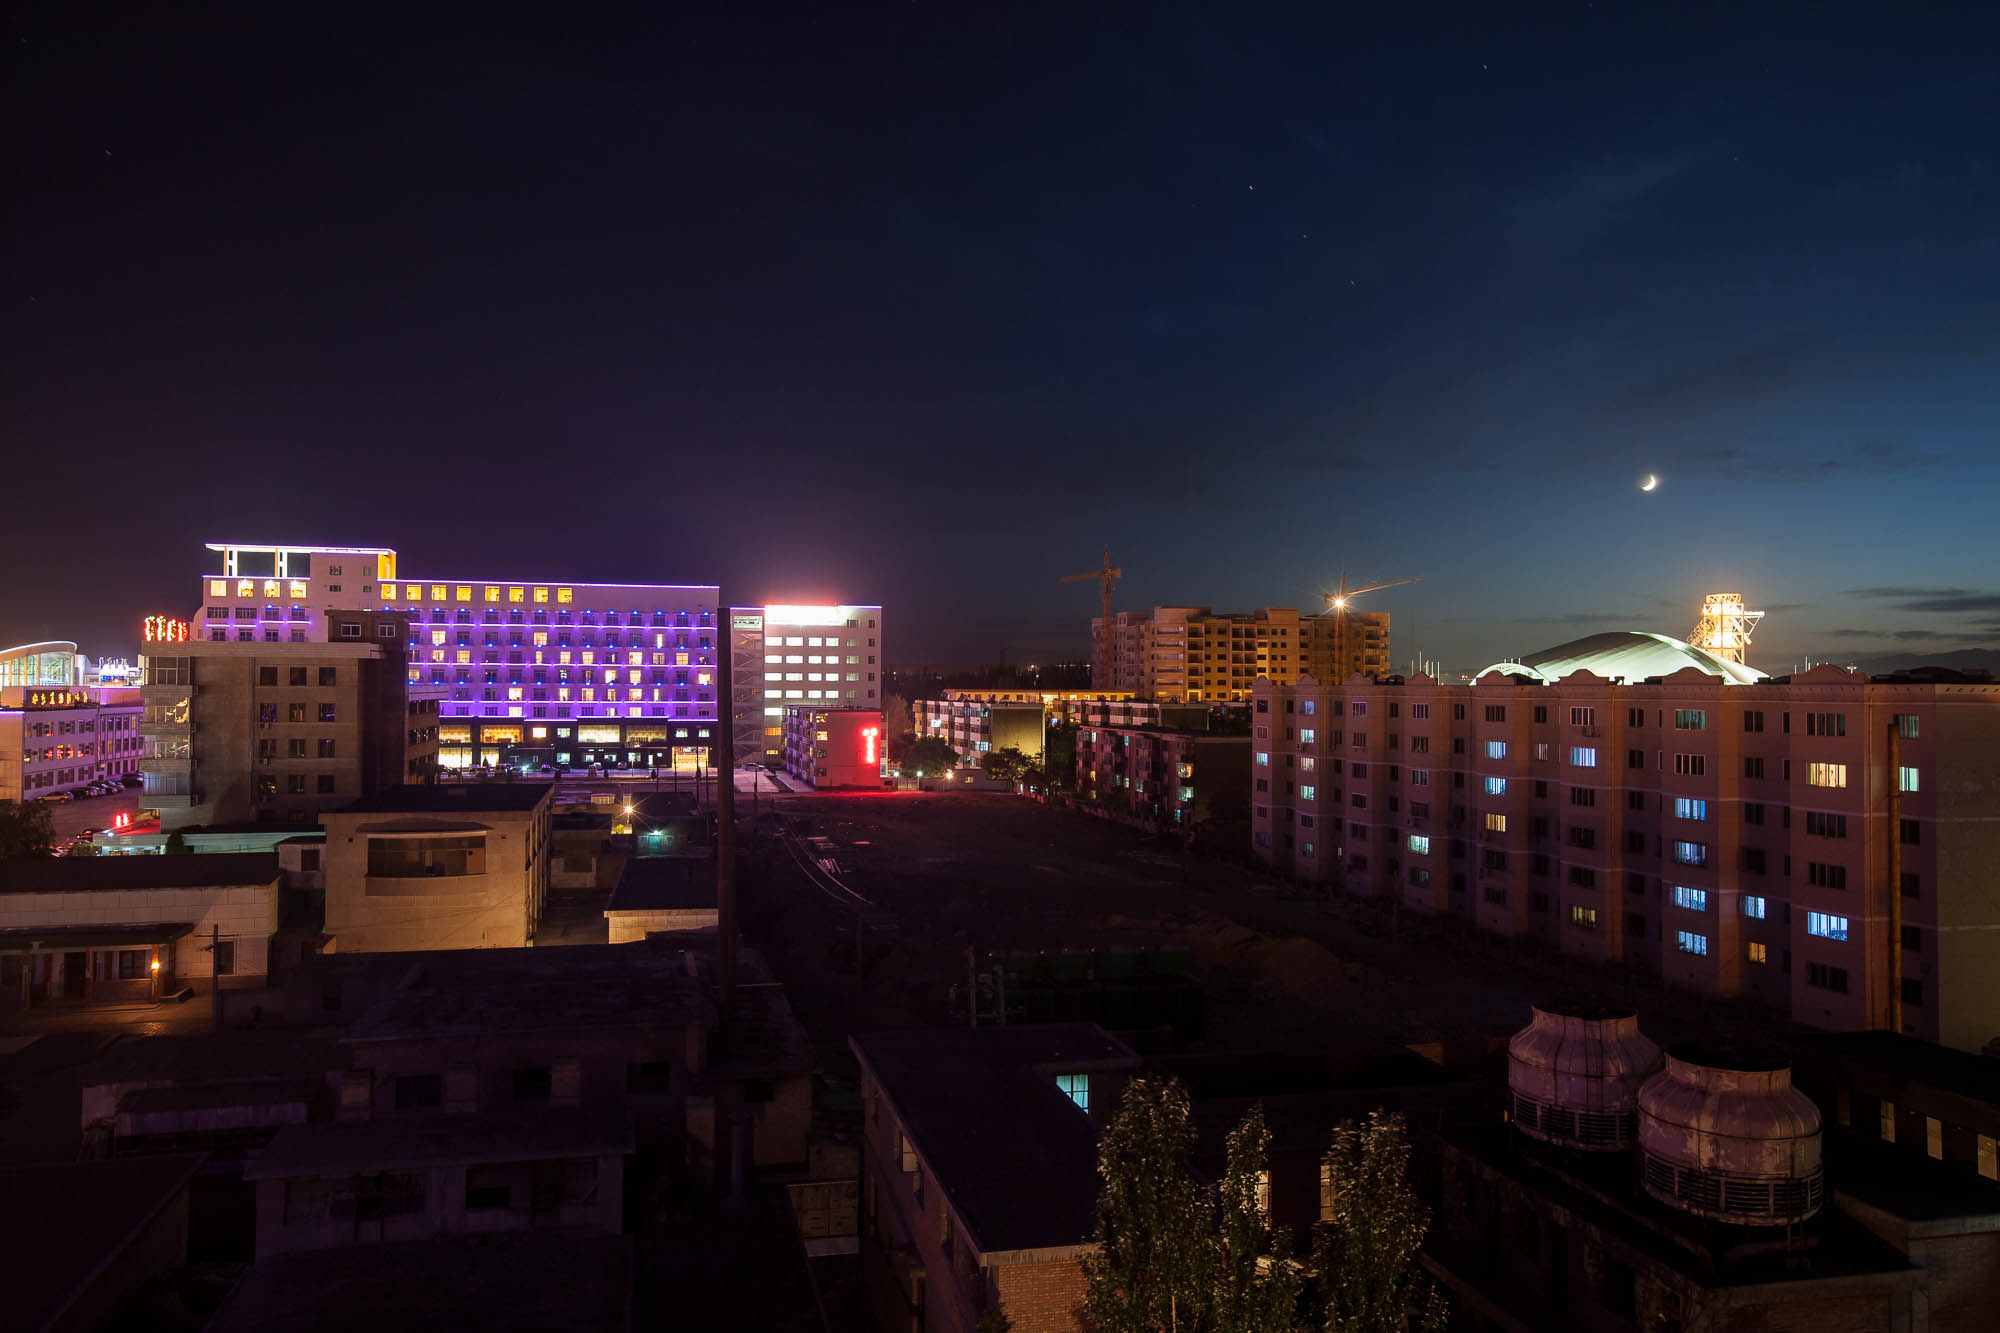 Jiayuguan at night